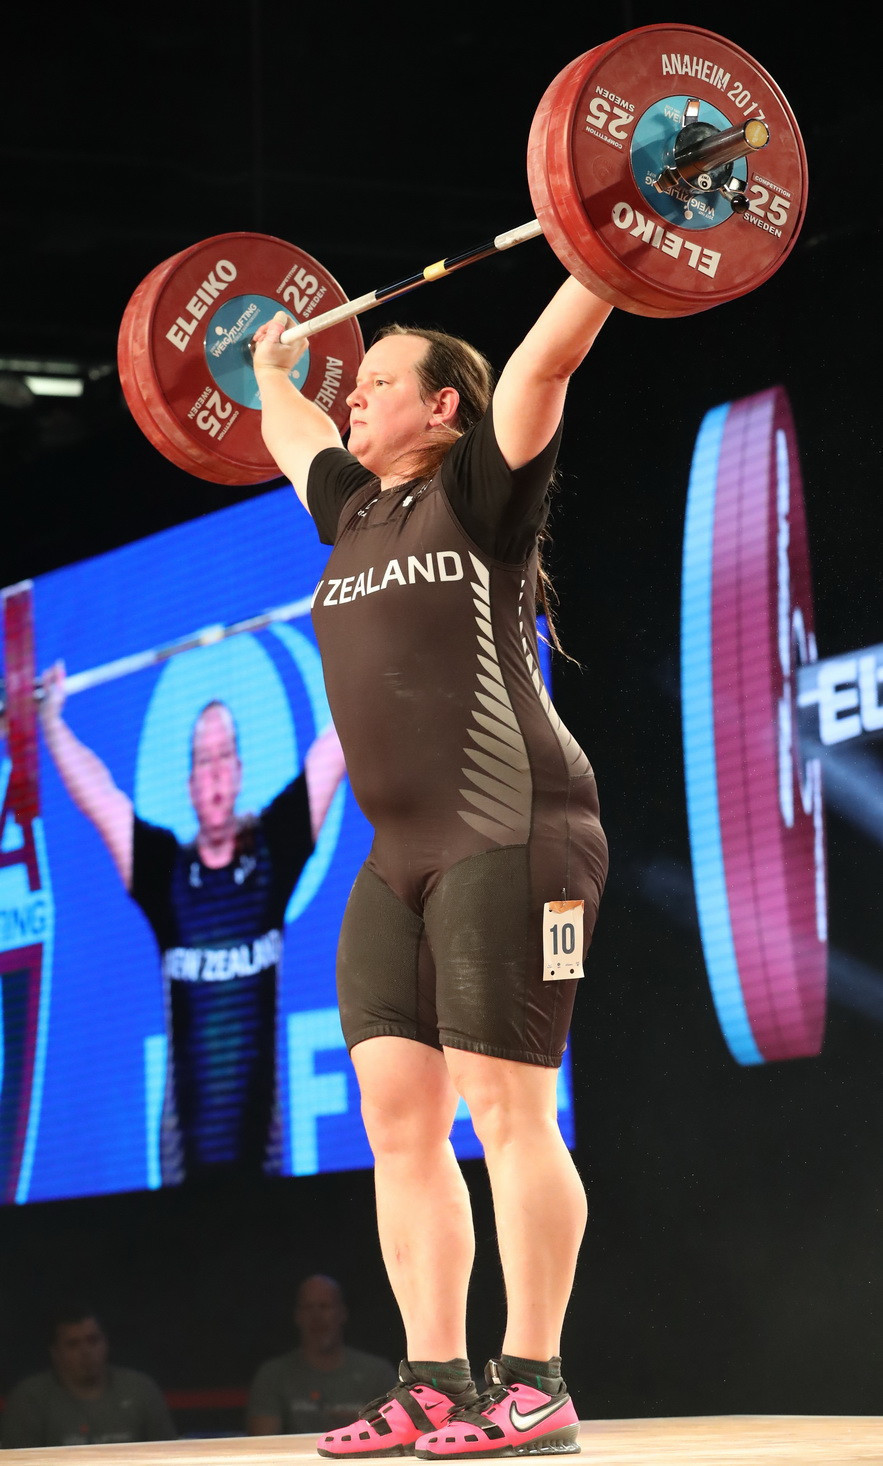 Laurel Hubbard won a silver medal at the IWF World Championships in Anaheim ©IWF